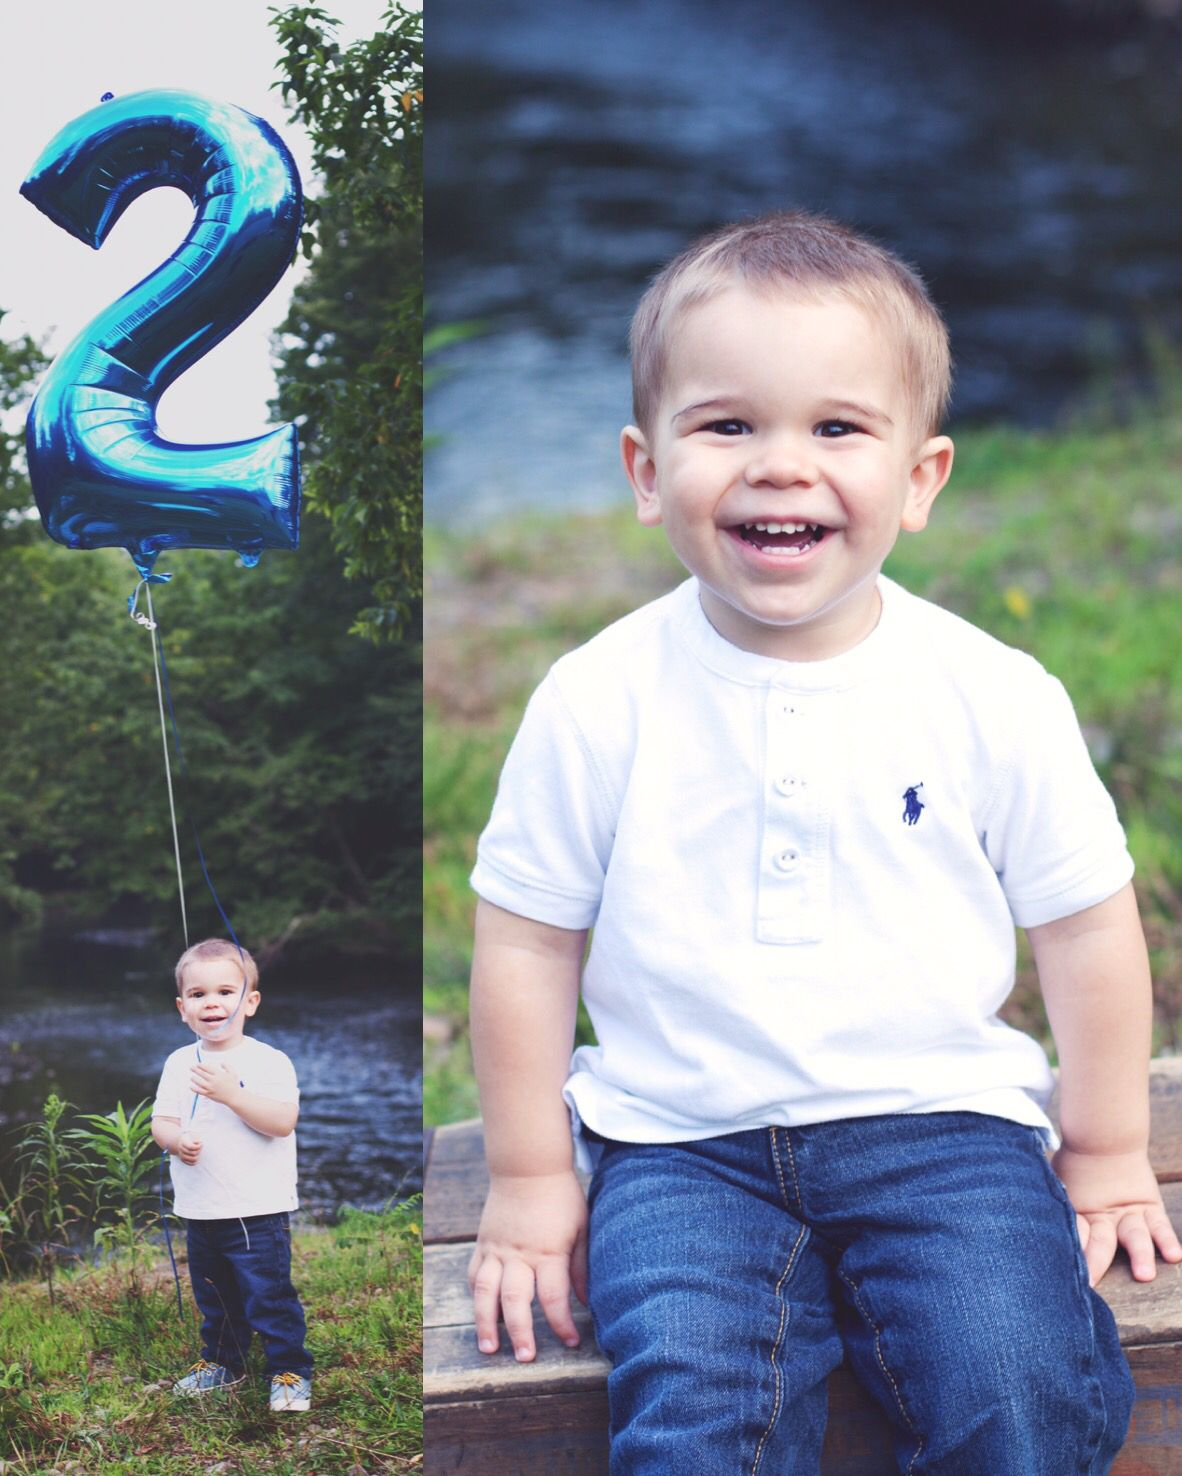 Two Year Old Boy Outdoor Session Family Photography Photo Shoot 2nd Birthday Giant Birthday Bal 2nd Birthday Photos 2nd Birthday Pictures 2nd Birthday Boys